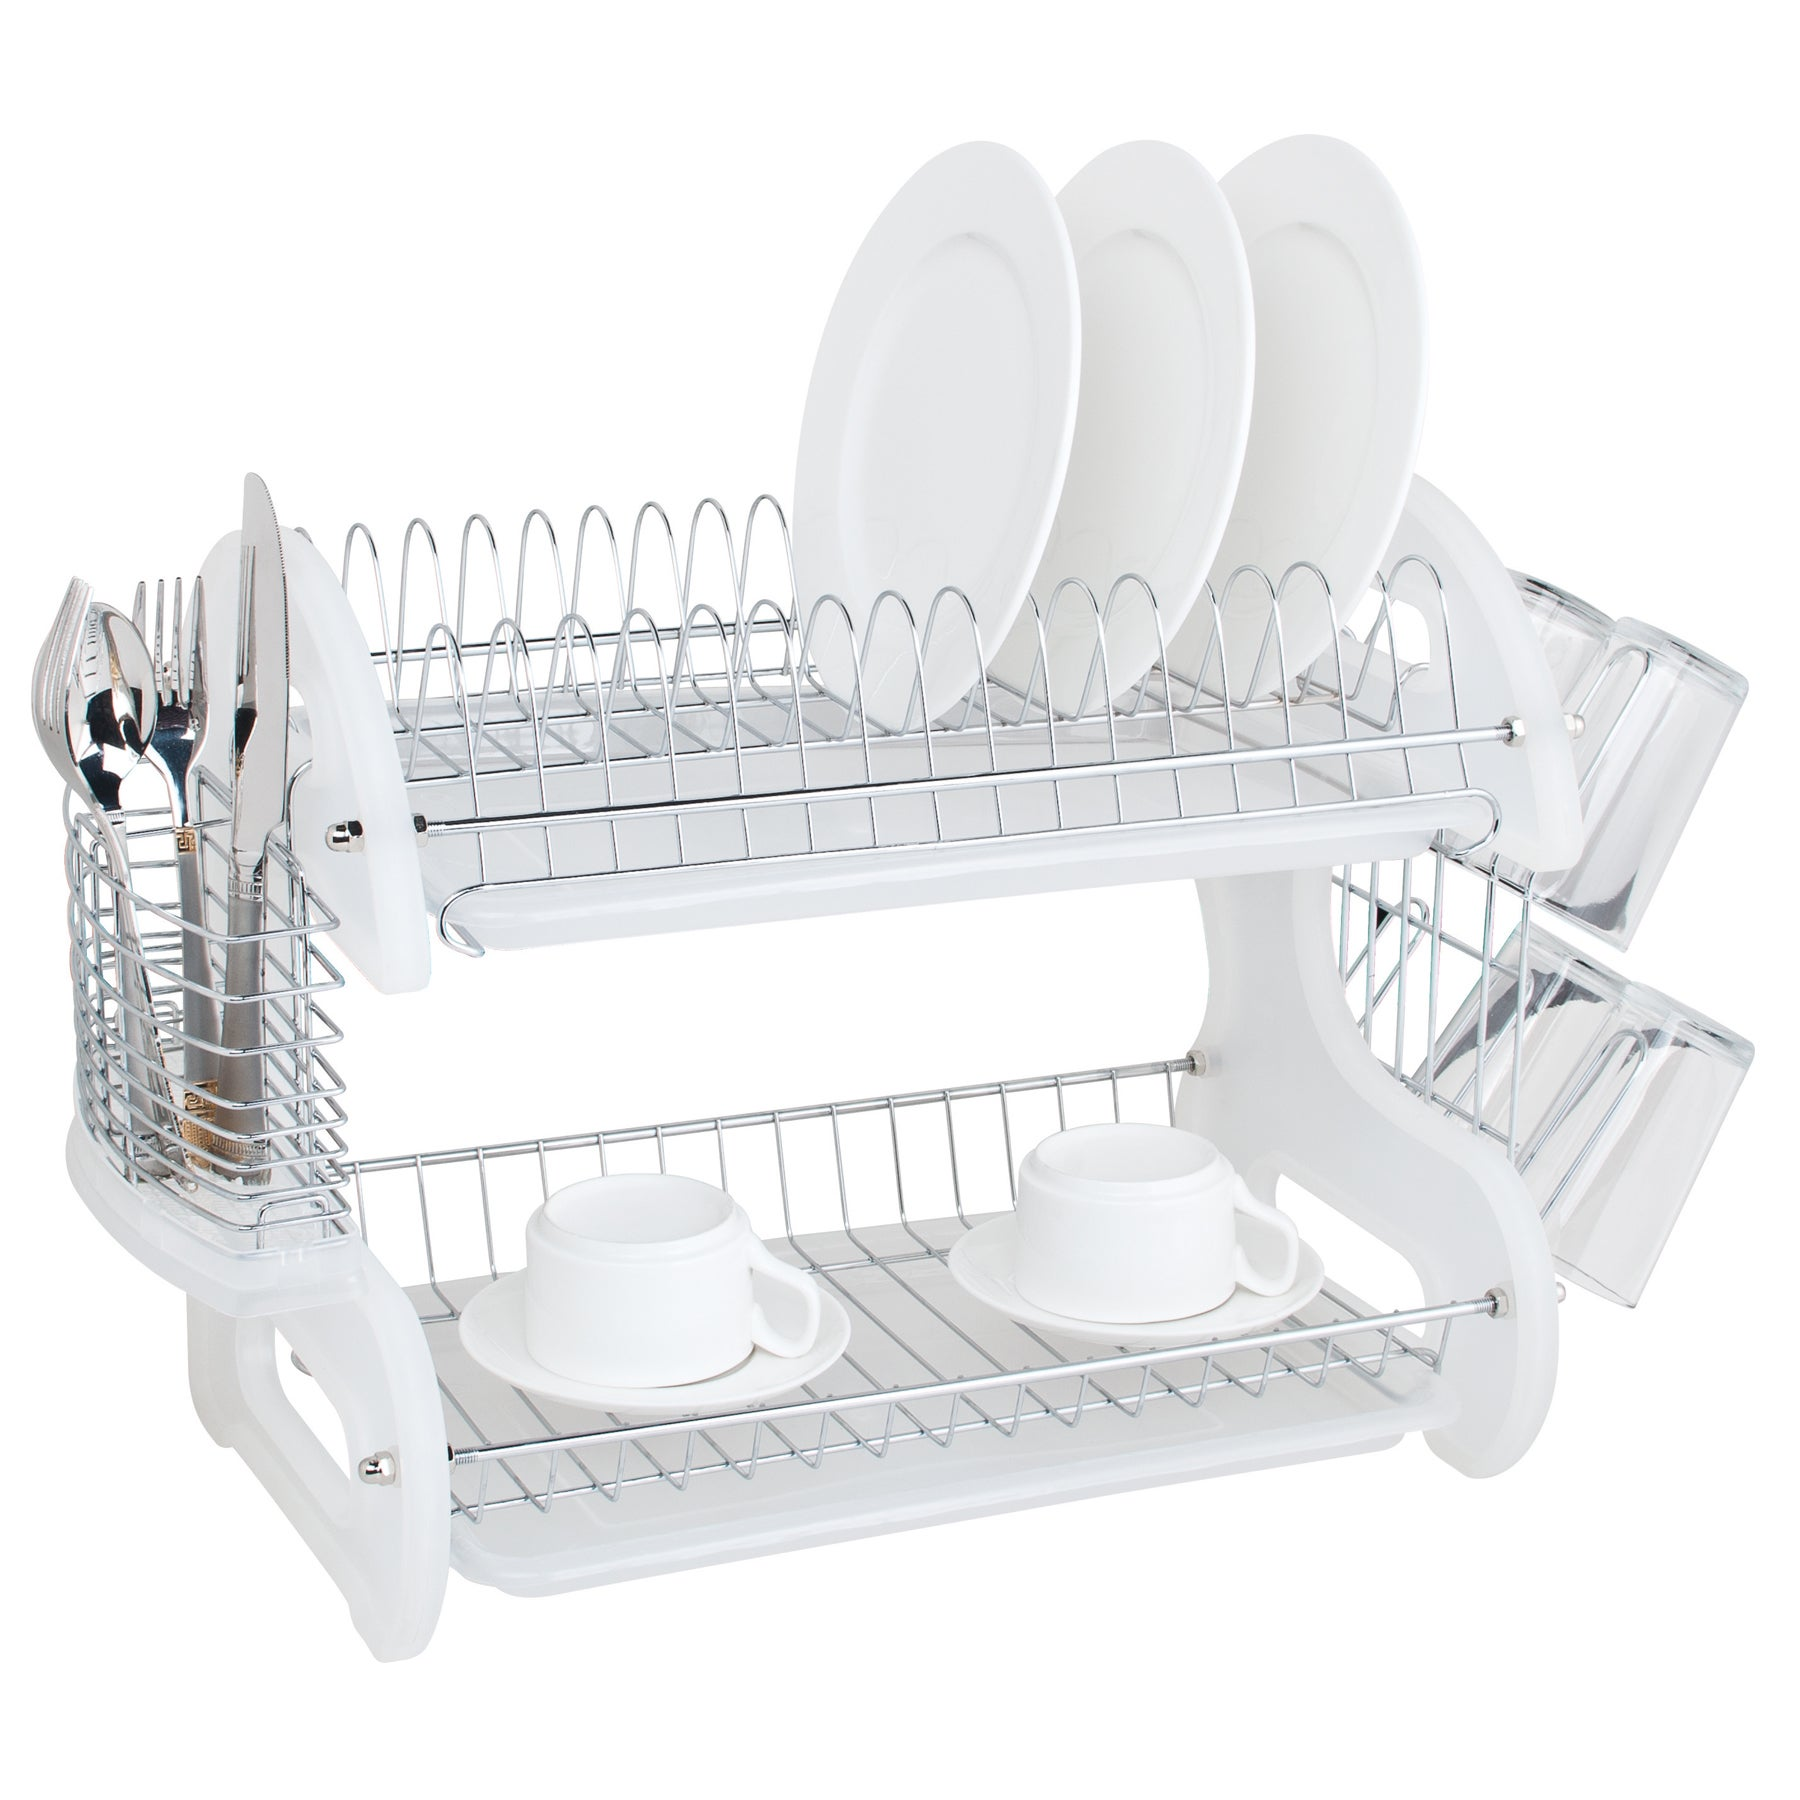 Sweet Home Collection Sleek Contemporary Design White 2-Tier Dish Drainer -  Free Shipping On Orders Over $45 - Overstock.com - 17216385